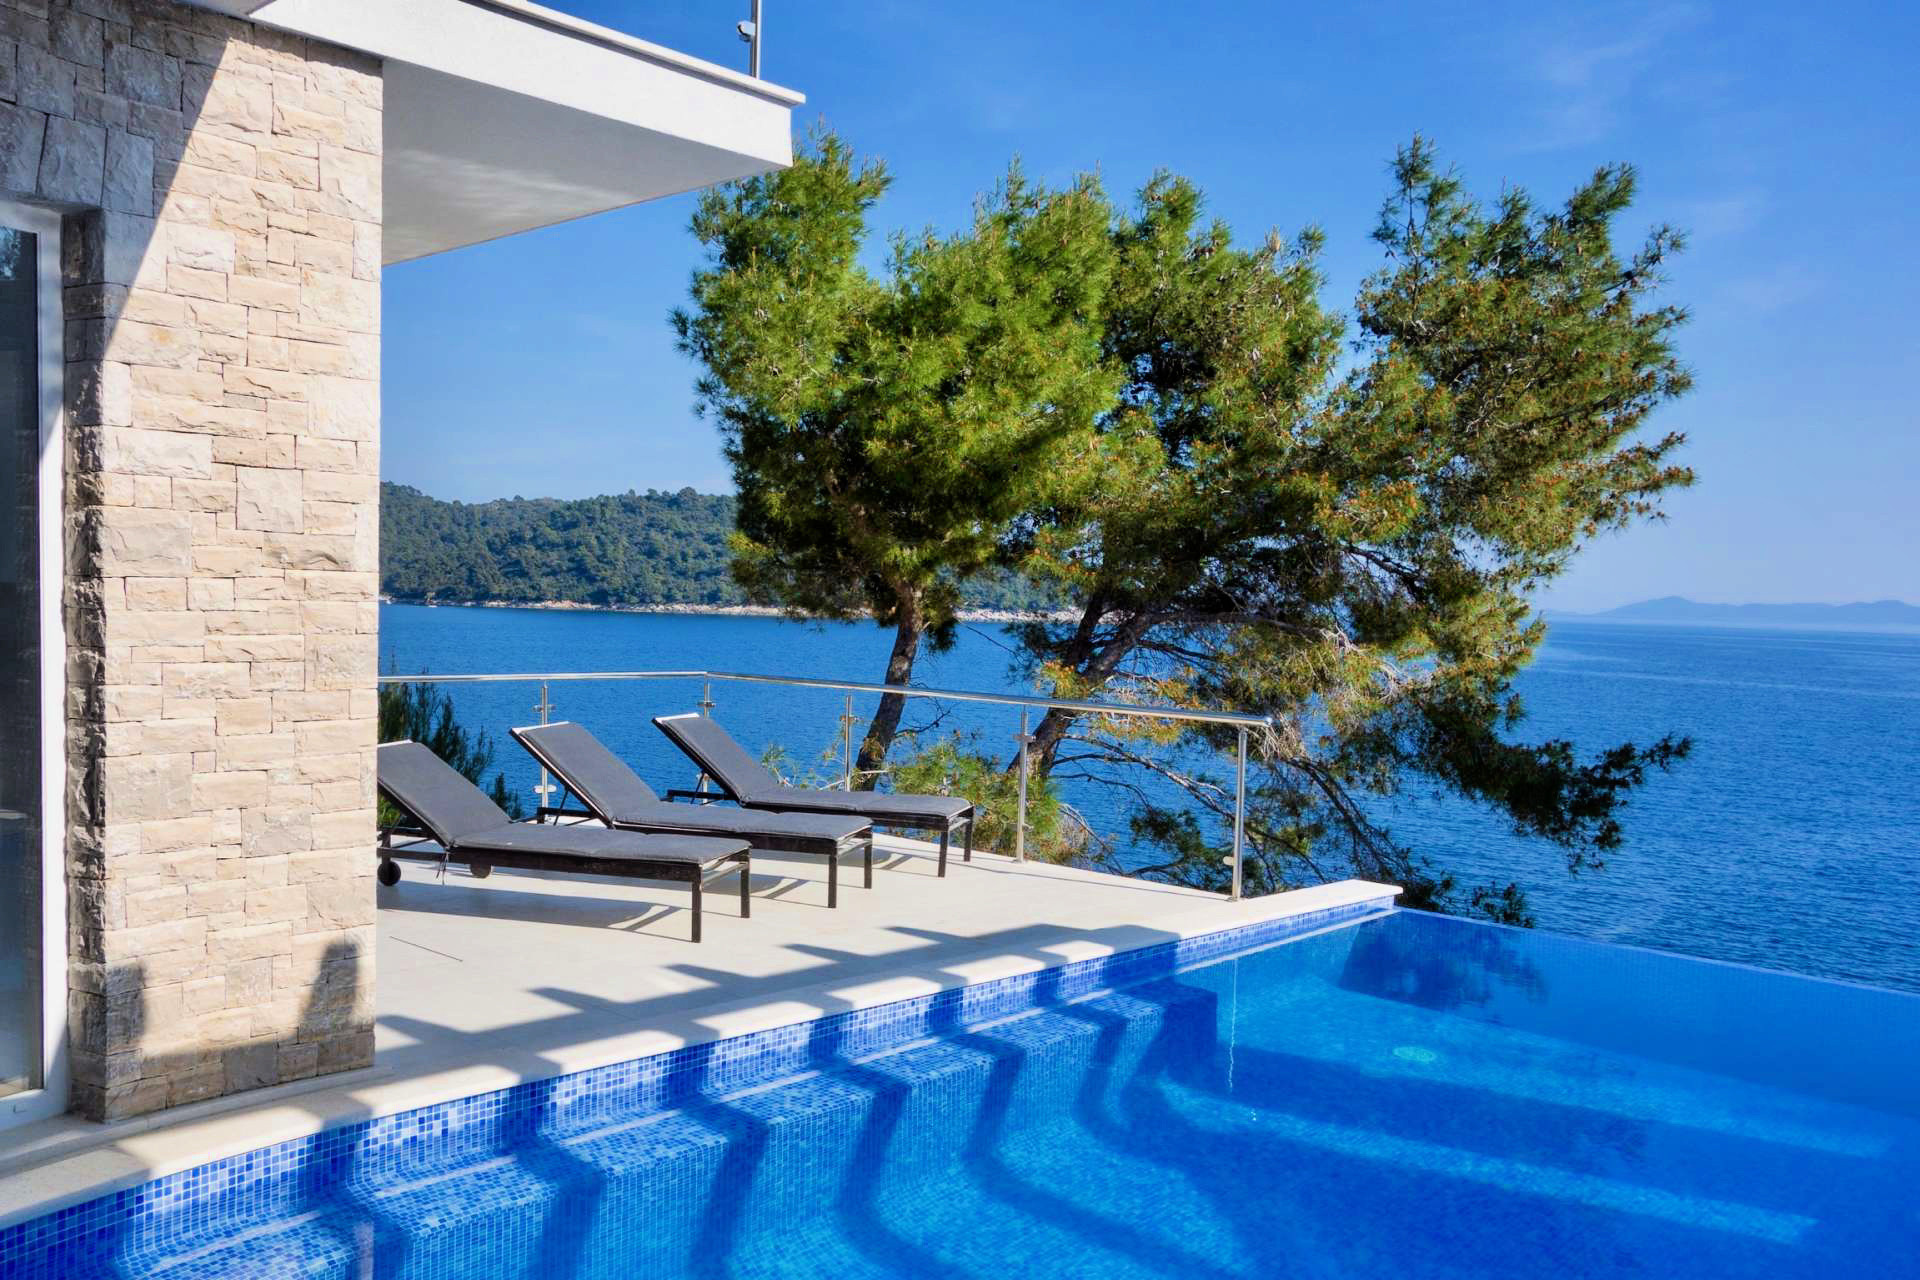 Find the holiday villa of your dreams, Vacation villas, apartments and hotels in Croatia - Charming Croatia